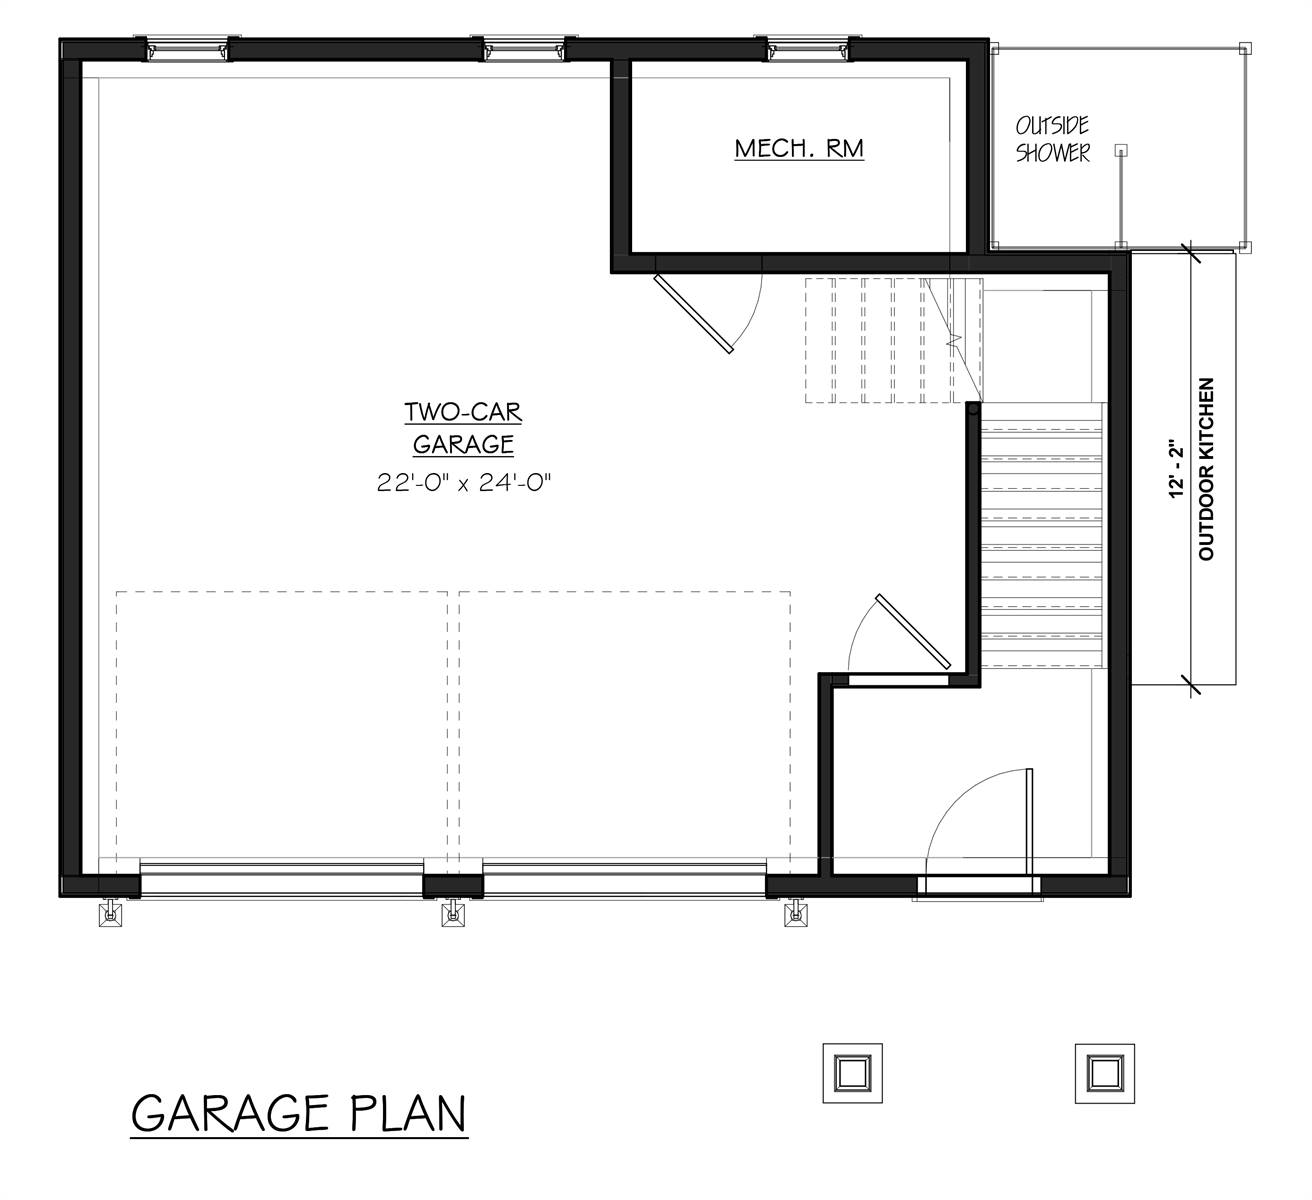 Garage Floor Plan image of Featured House Plan: BHG - 7055